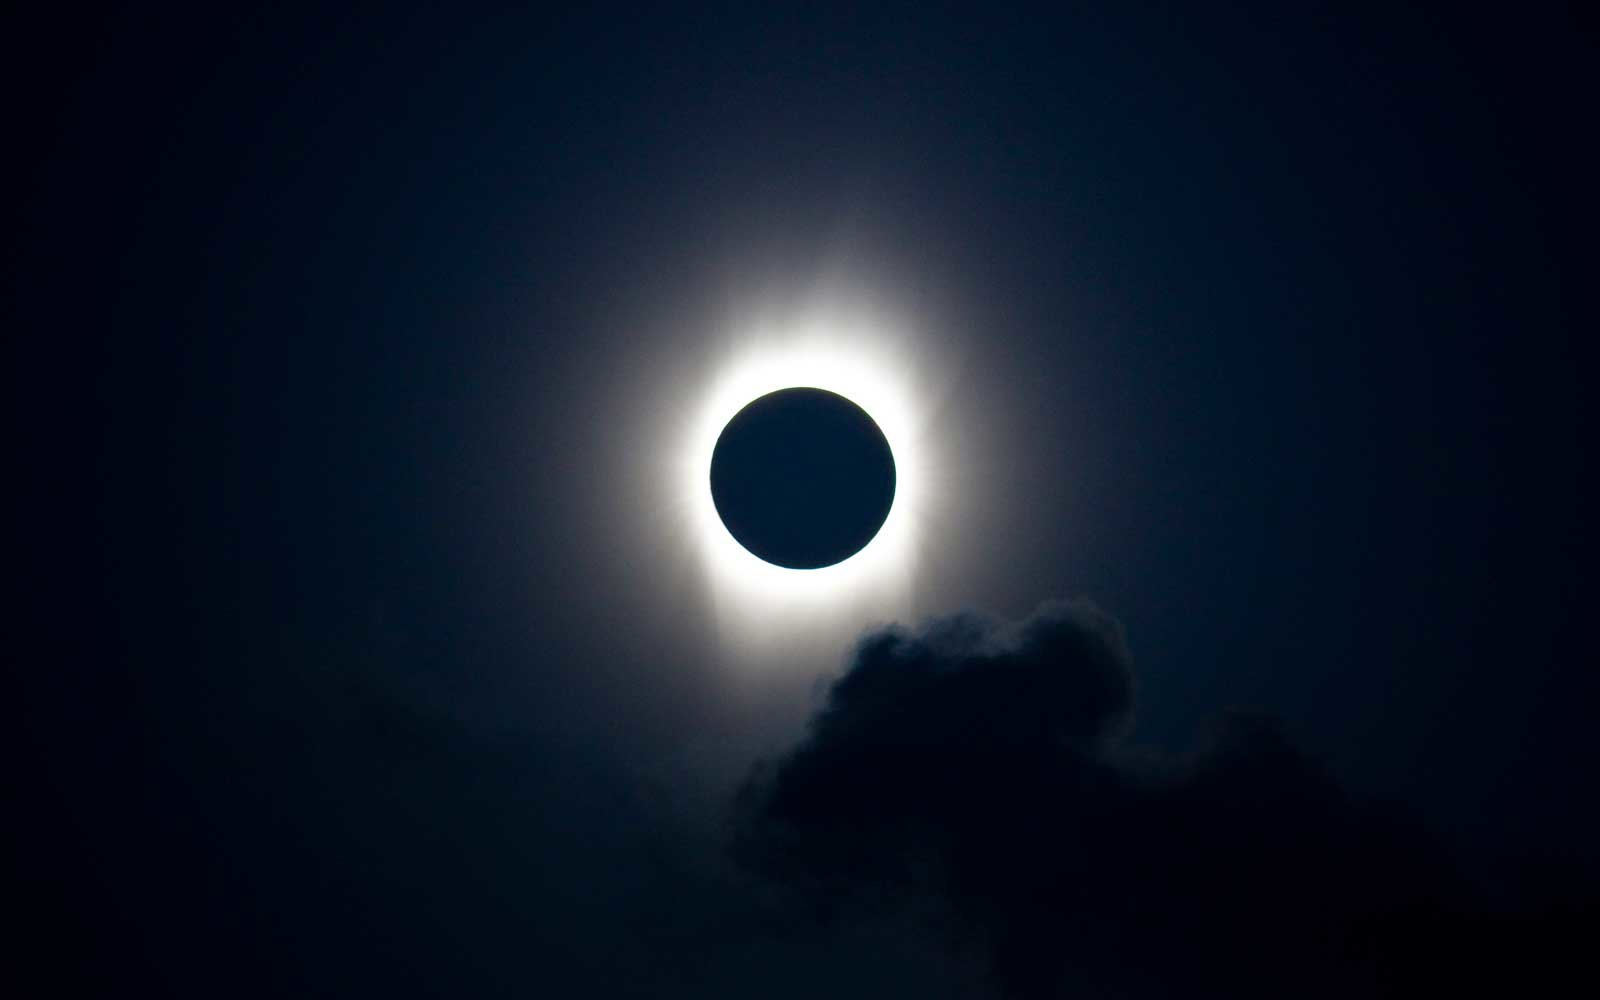 Total Solar Eclipse at 21 July 2009, Aitutaki Atoll, Cook Islands